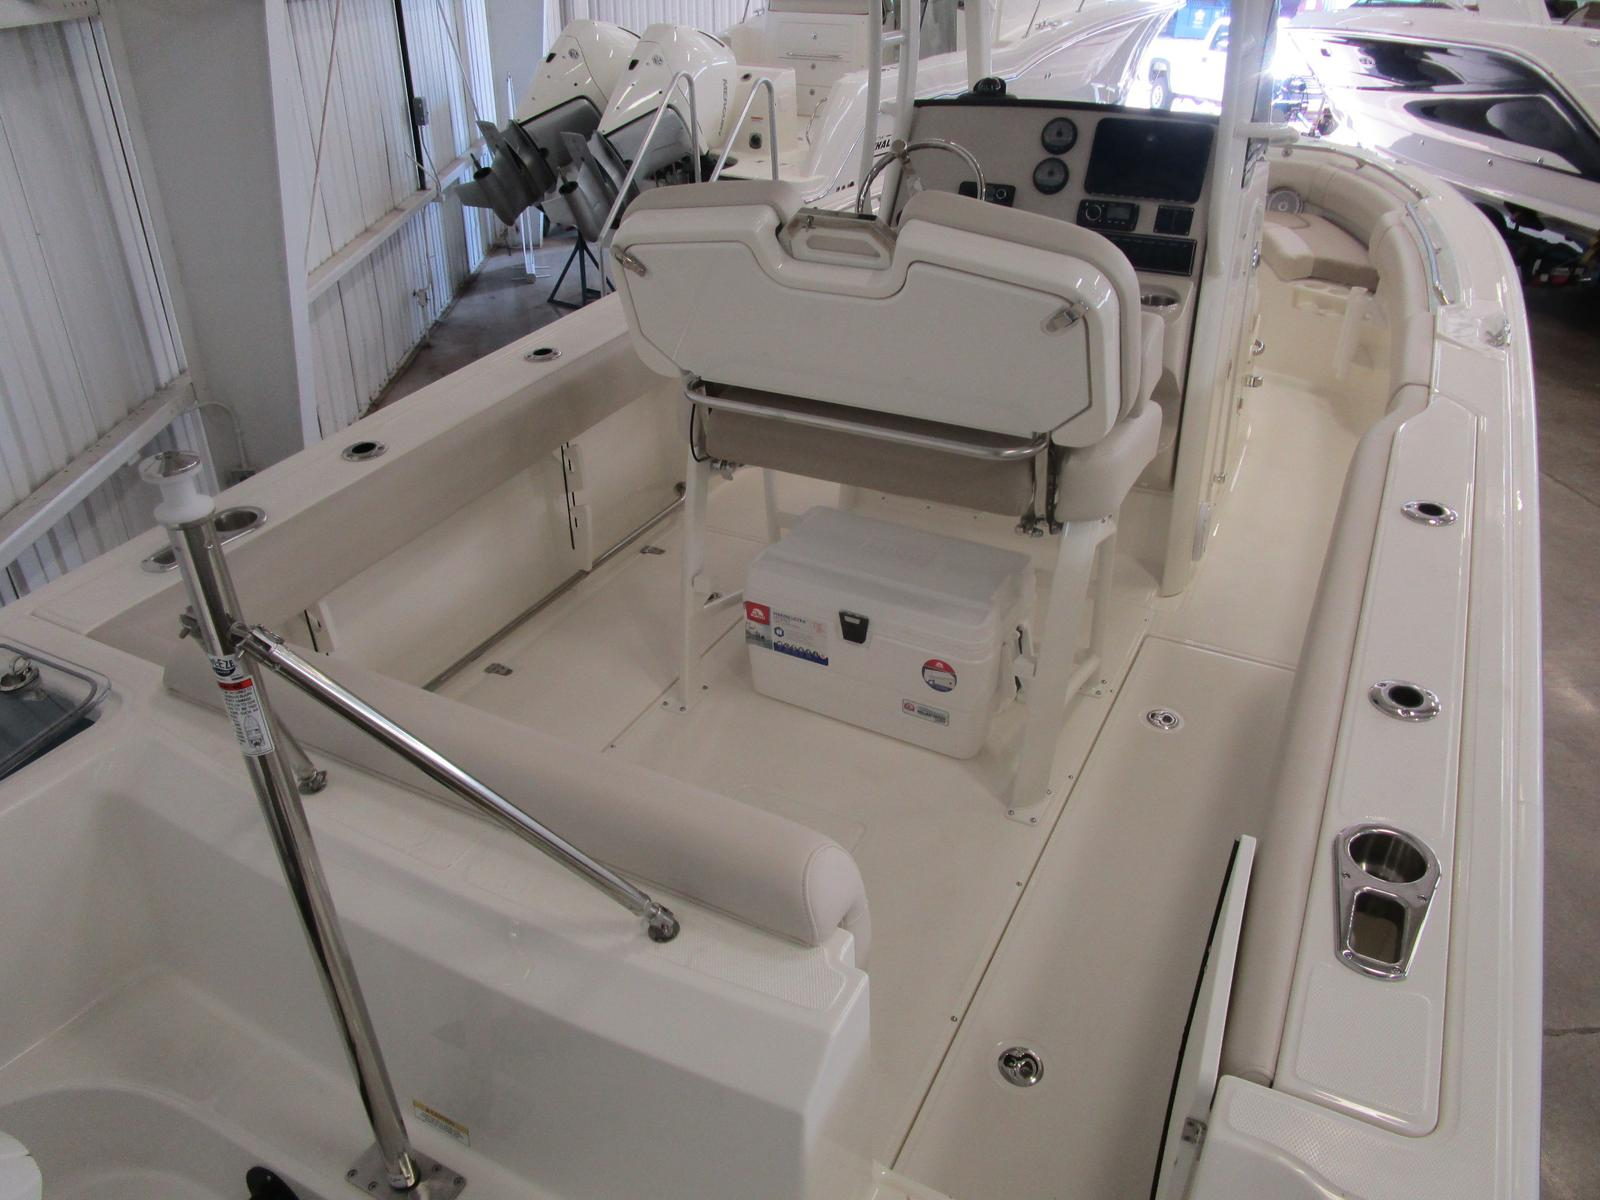 2019 Boston Whaler boat for sale, model of the boat is 230 Outrage & Image # 6 of 10